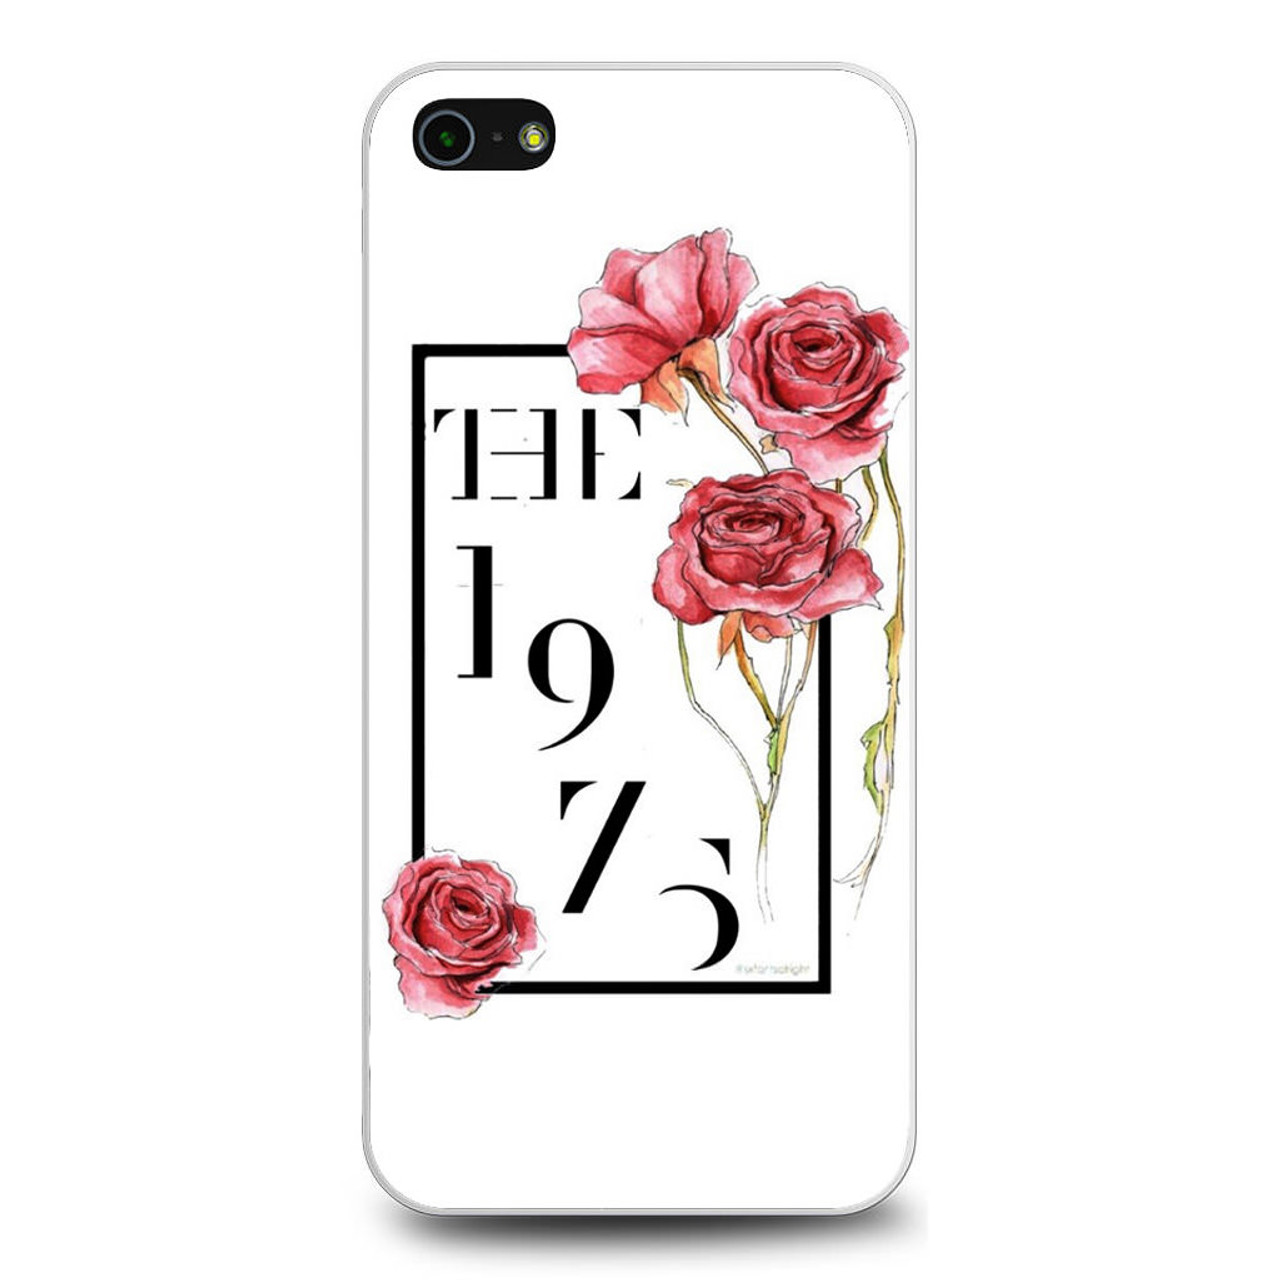 The 1975 Floral iphone case